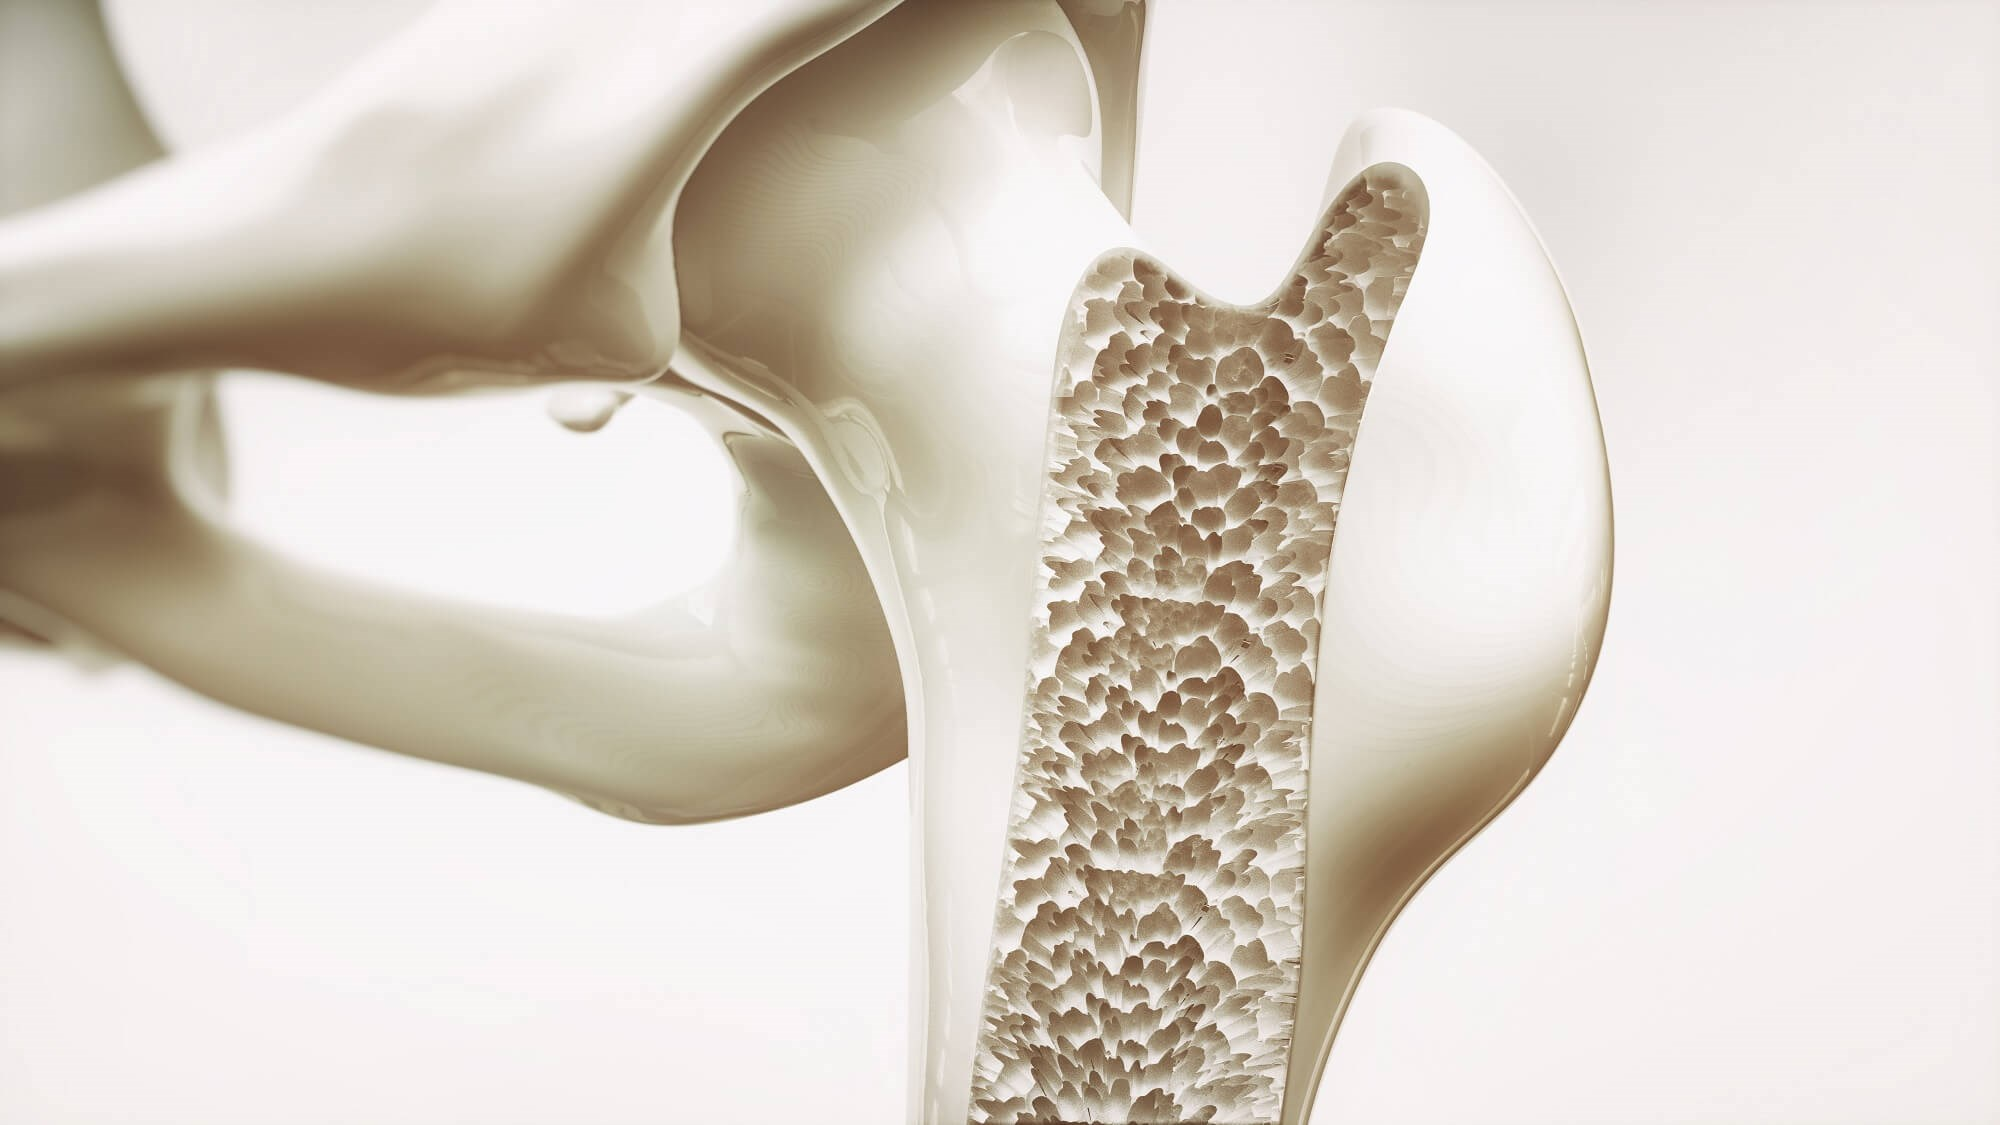 RAAS Inhibitors Do Not Increase Fracture Risk, Osteoporosis in Postmenopausal Women